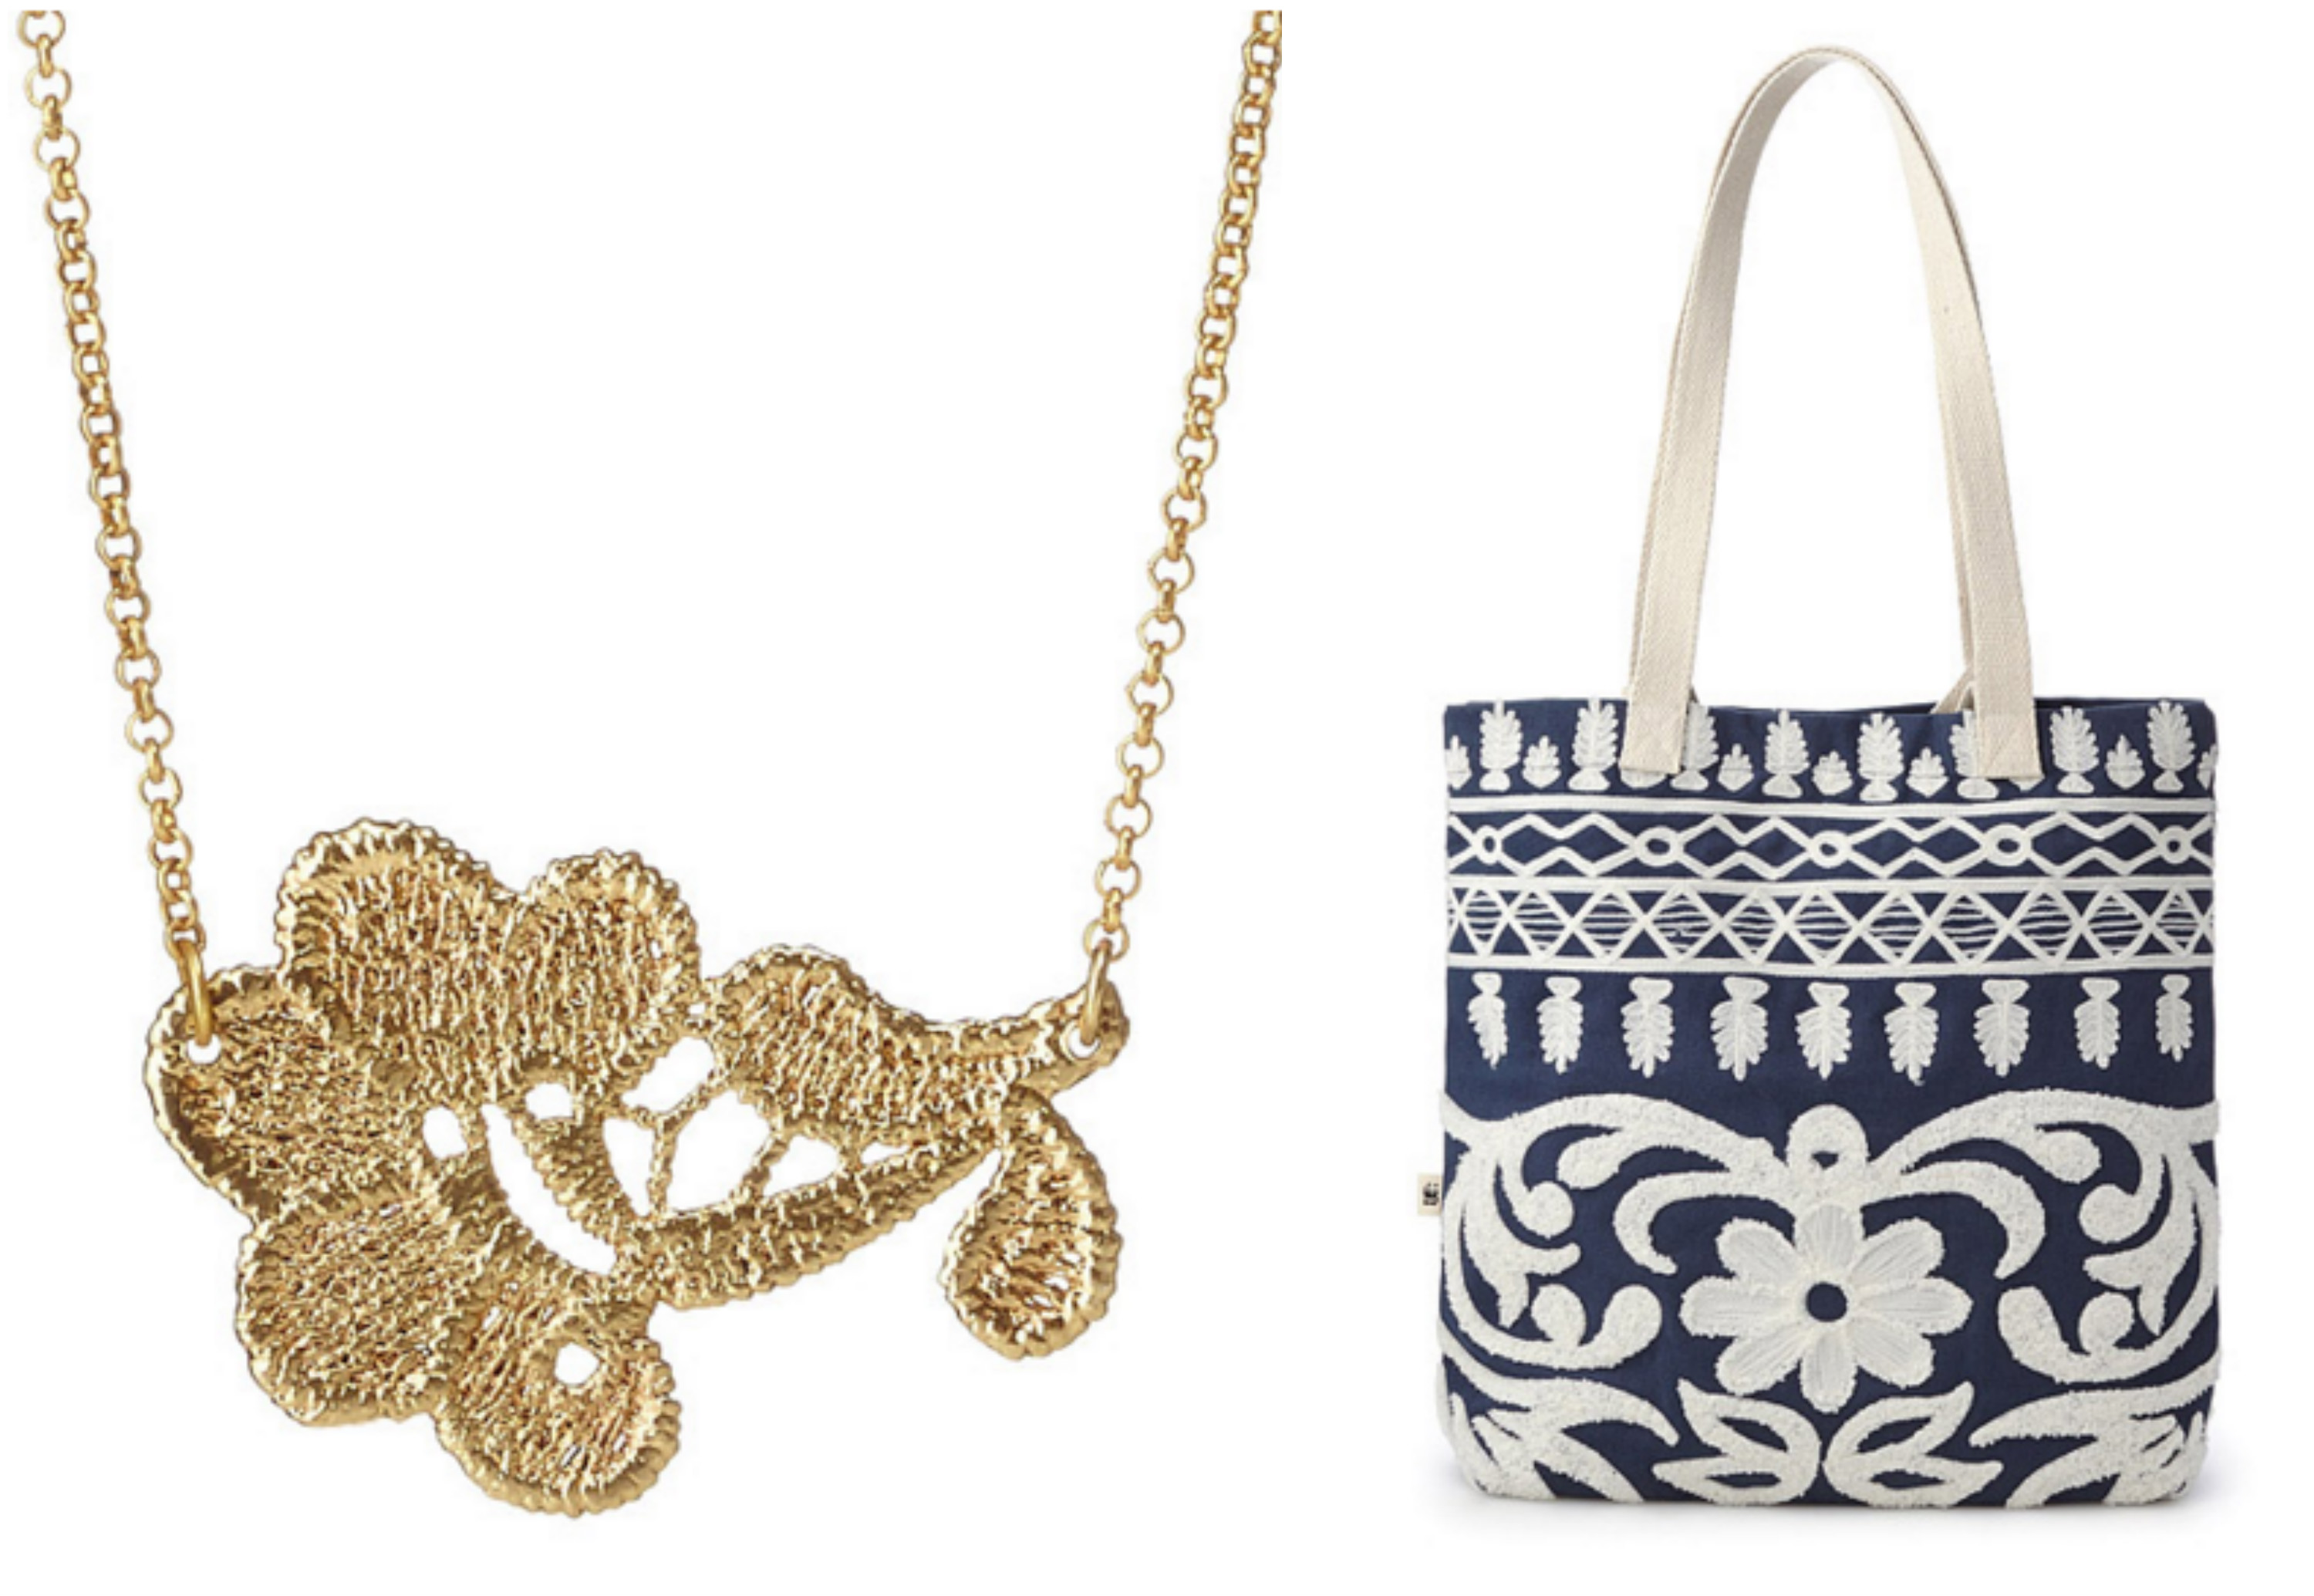 Gold Lace Necklace & Flora Embroidered Tote|UncommonGoods